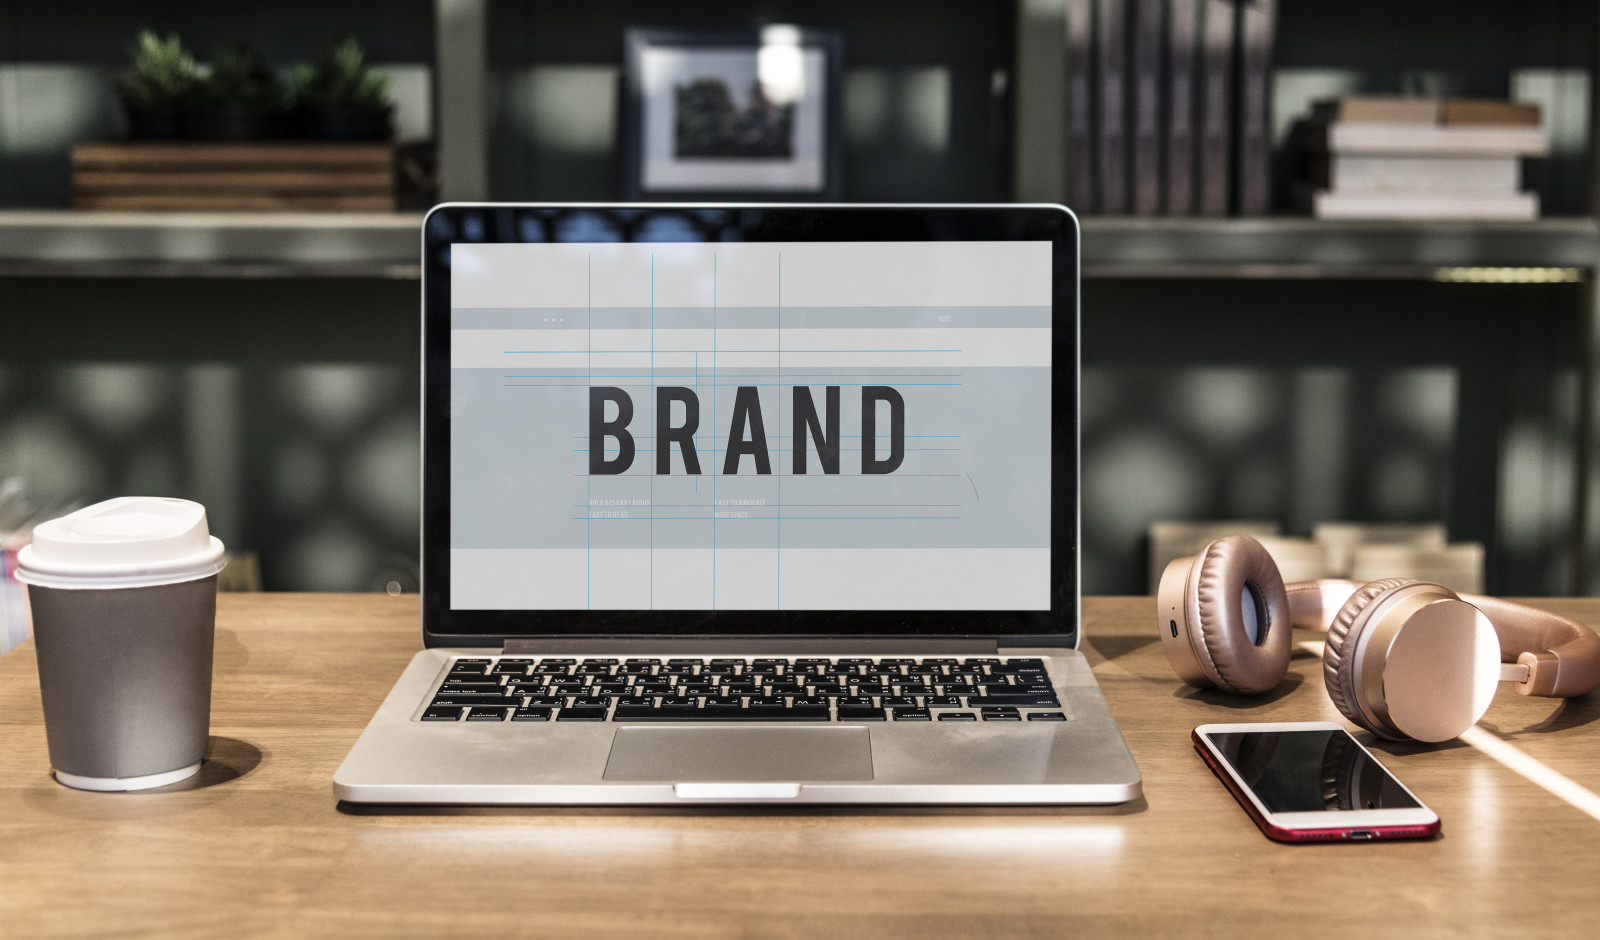 Fueling Sales Growth and Brand Awareness in a Matter of A few Months